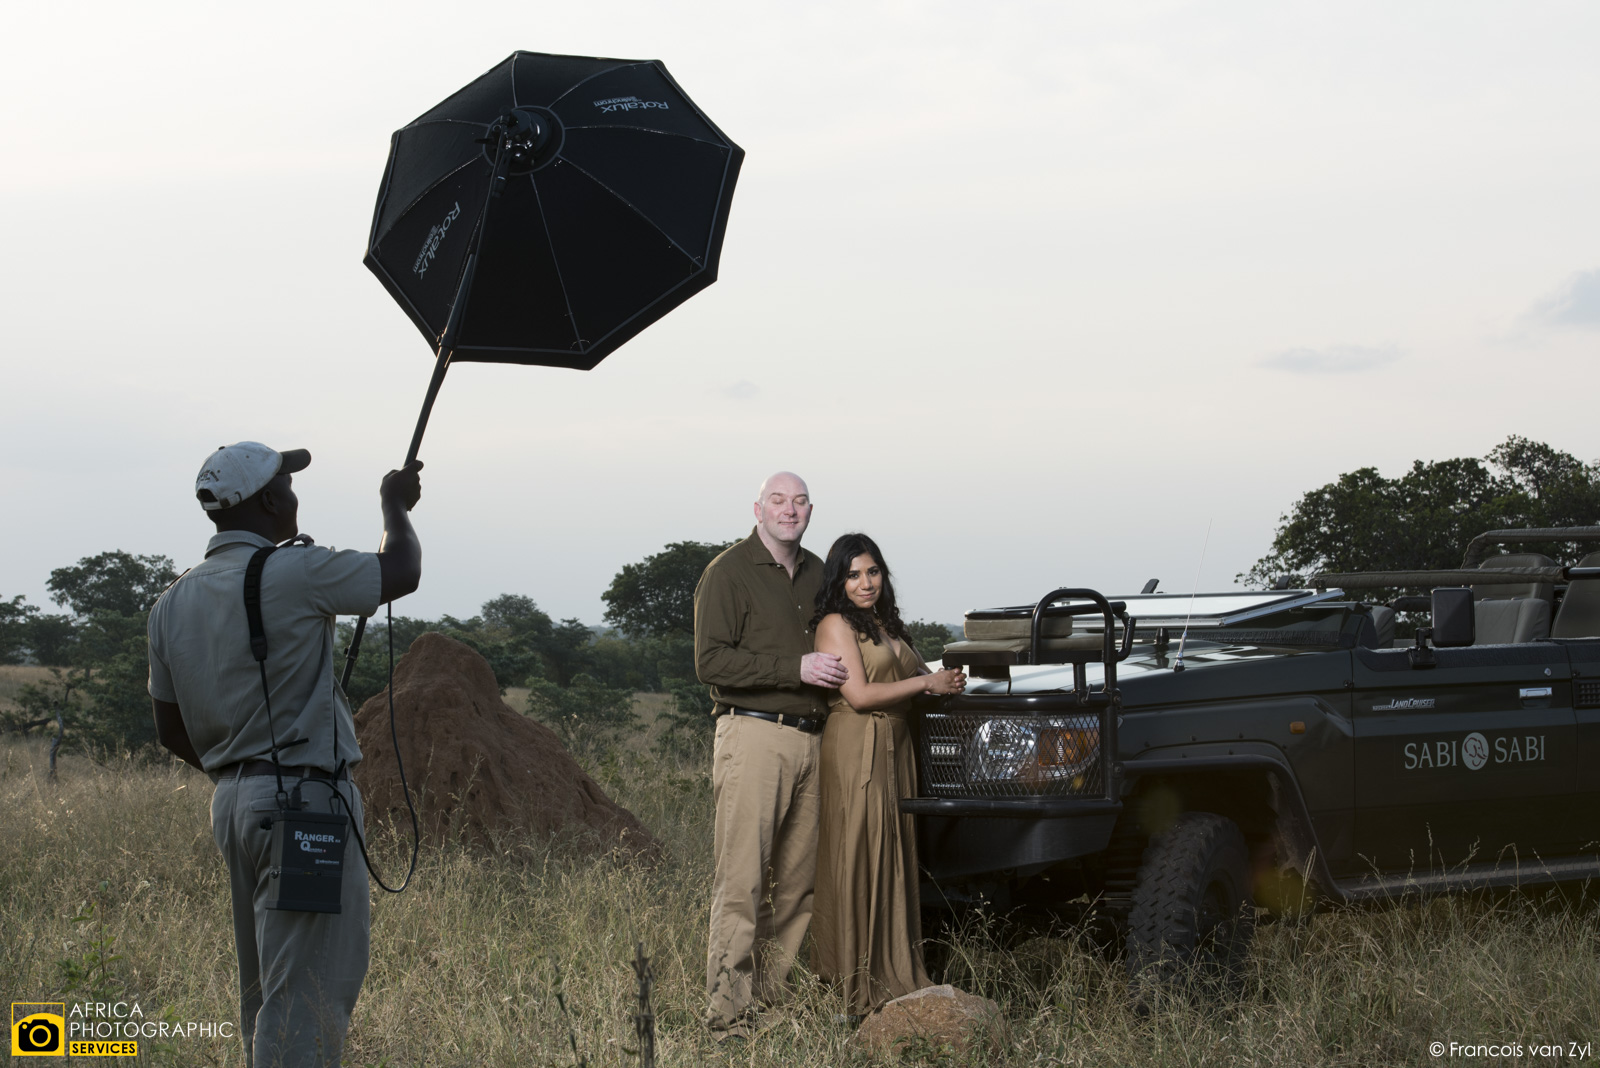 Francois van Zyl Wedding Portrait Photographer Mpumalanga South Africa  D816994 - Safari Portraiture, a behind the scenes look